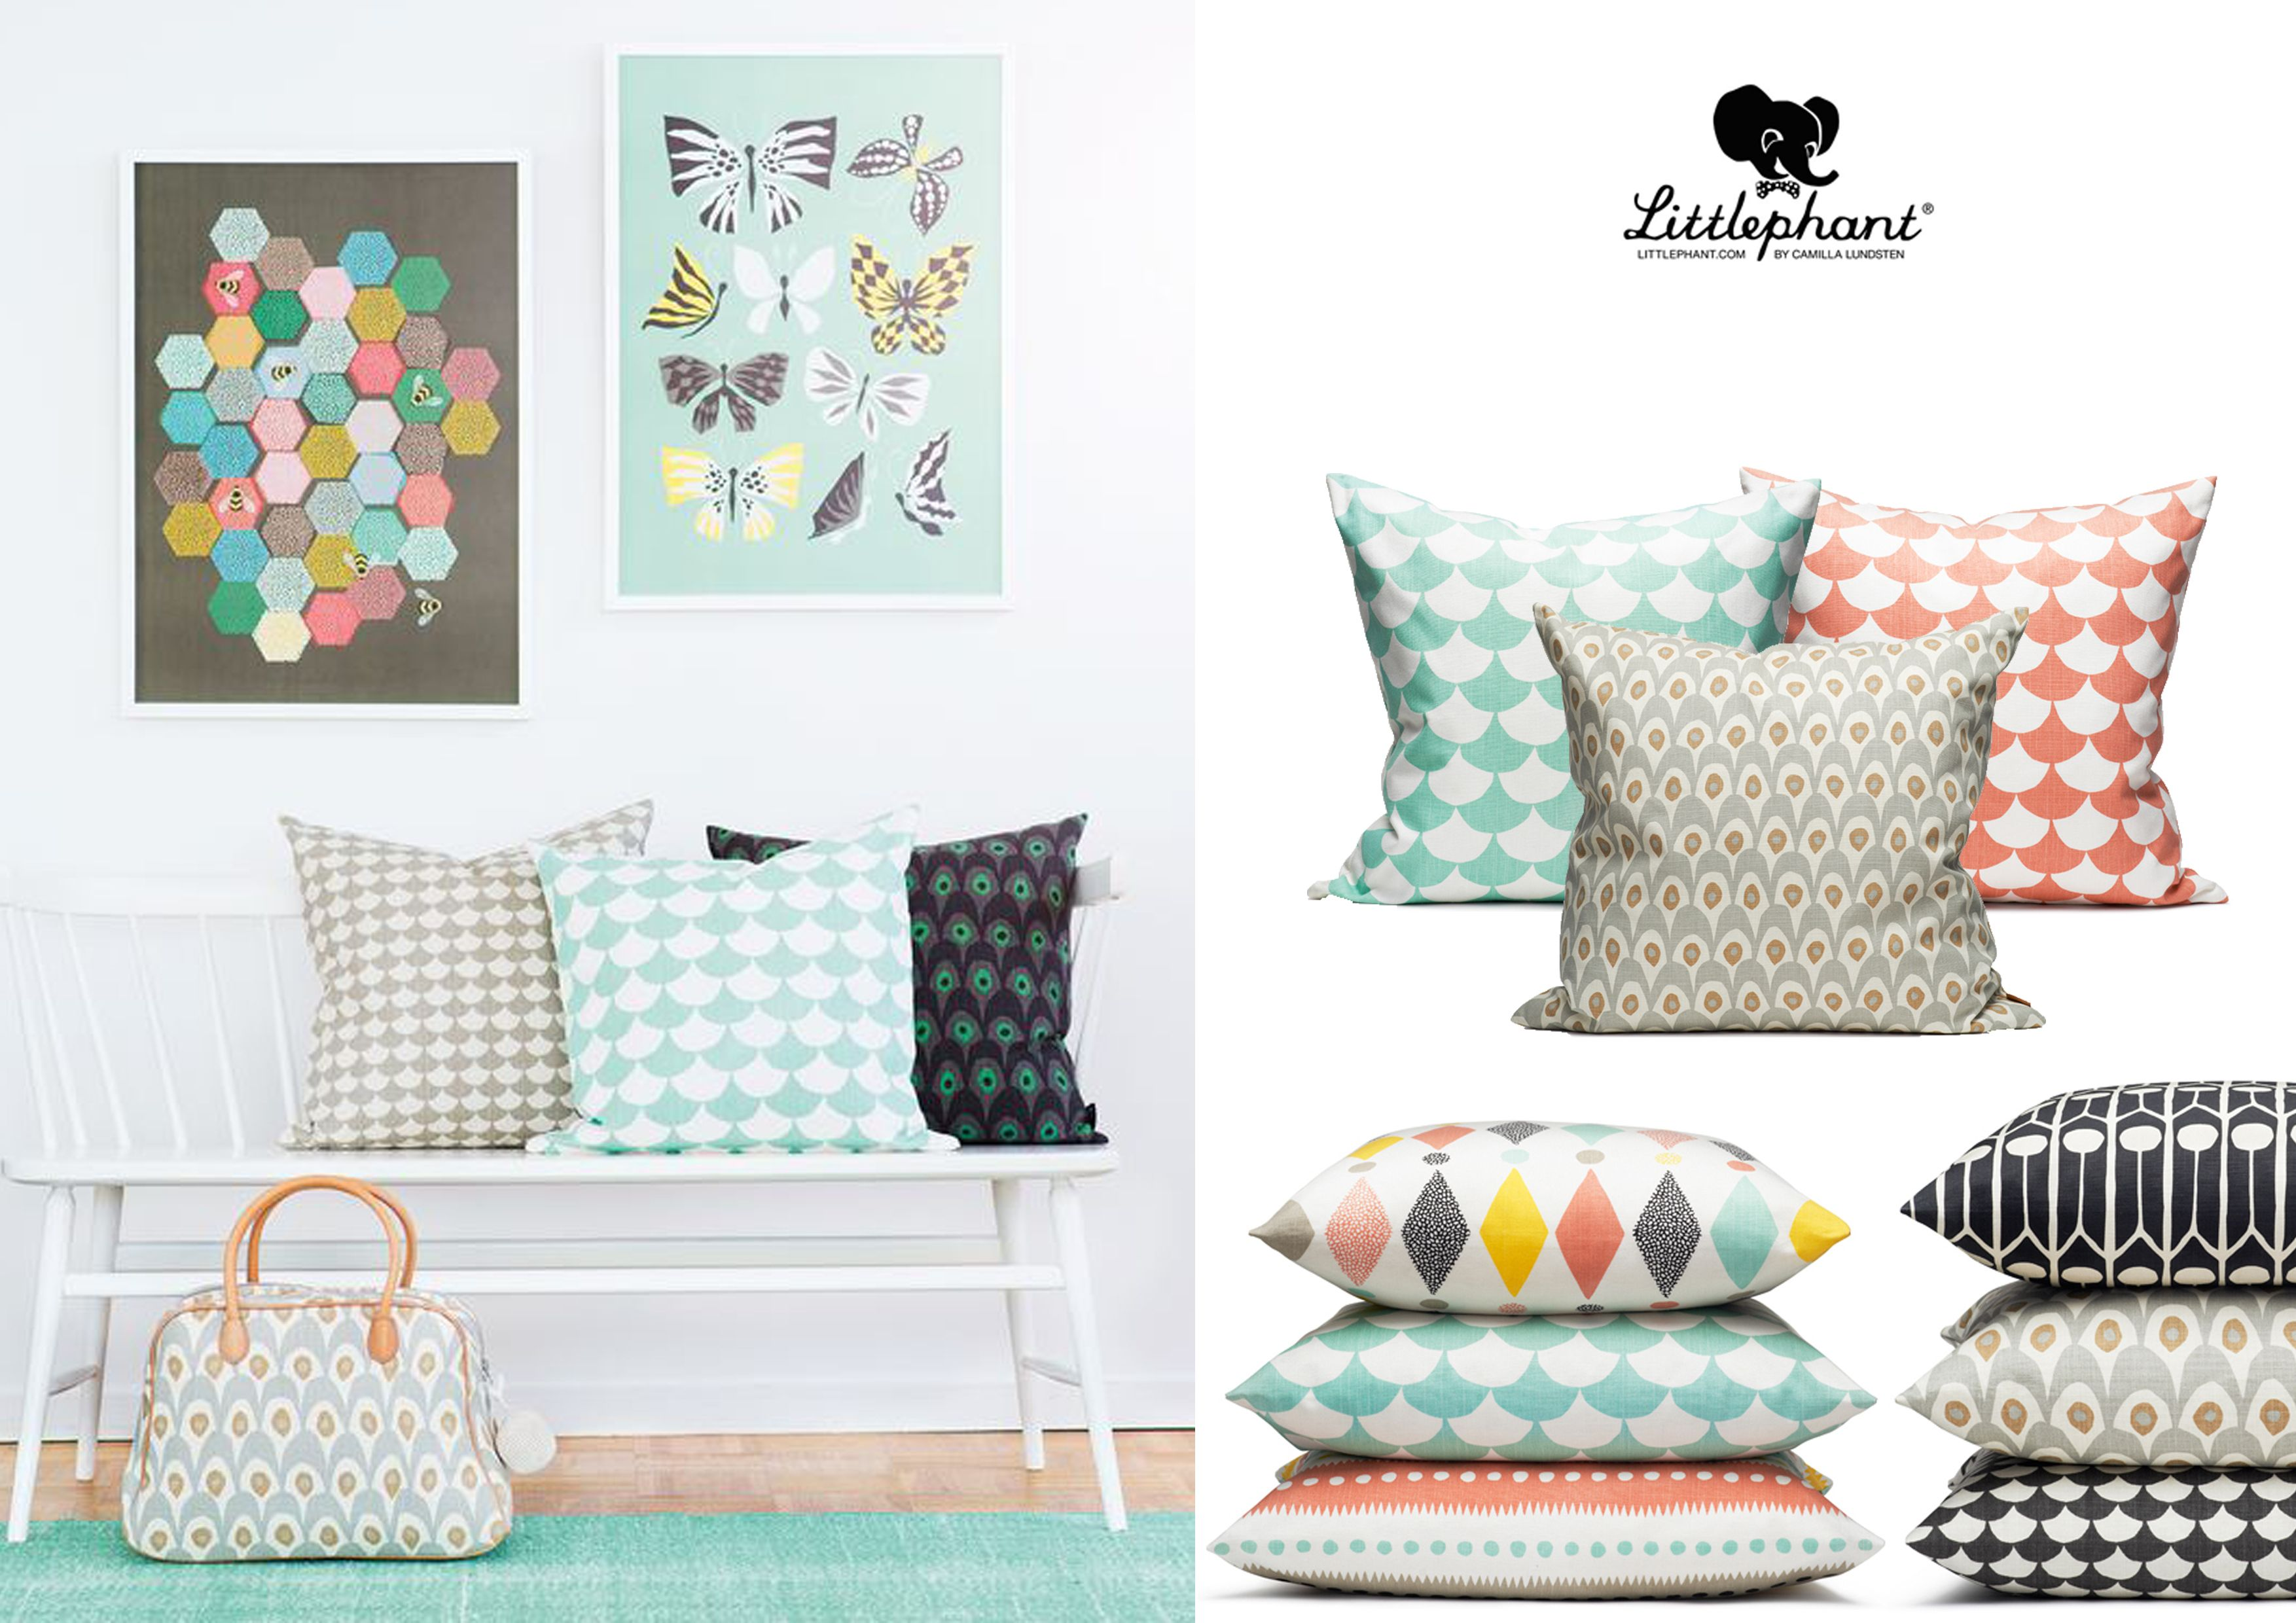 1000+ images about Barnrum/ Childrens room on Pinterest ...